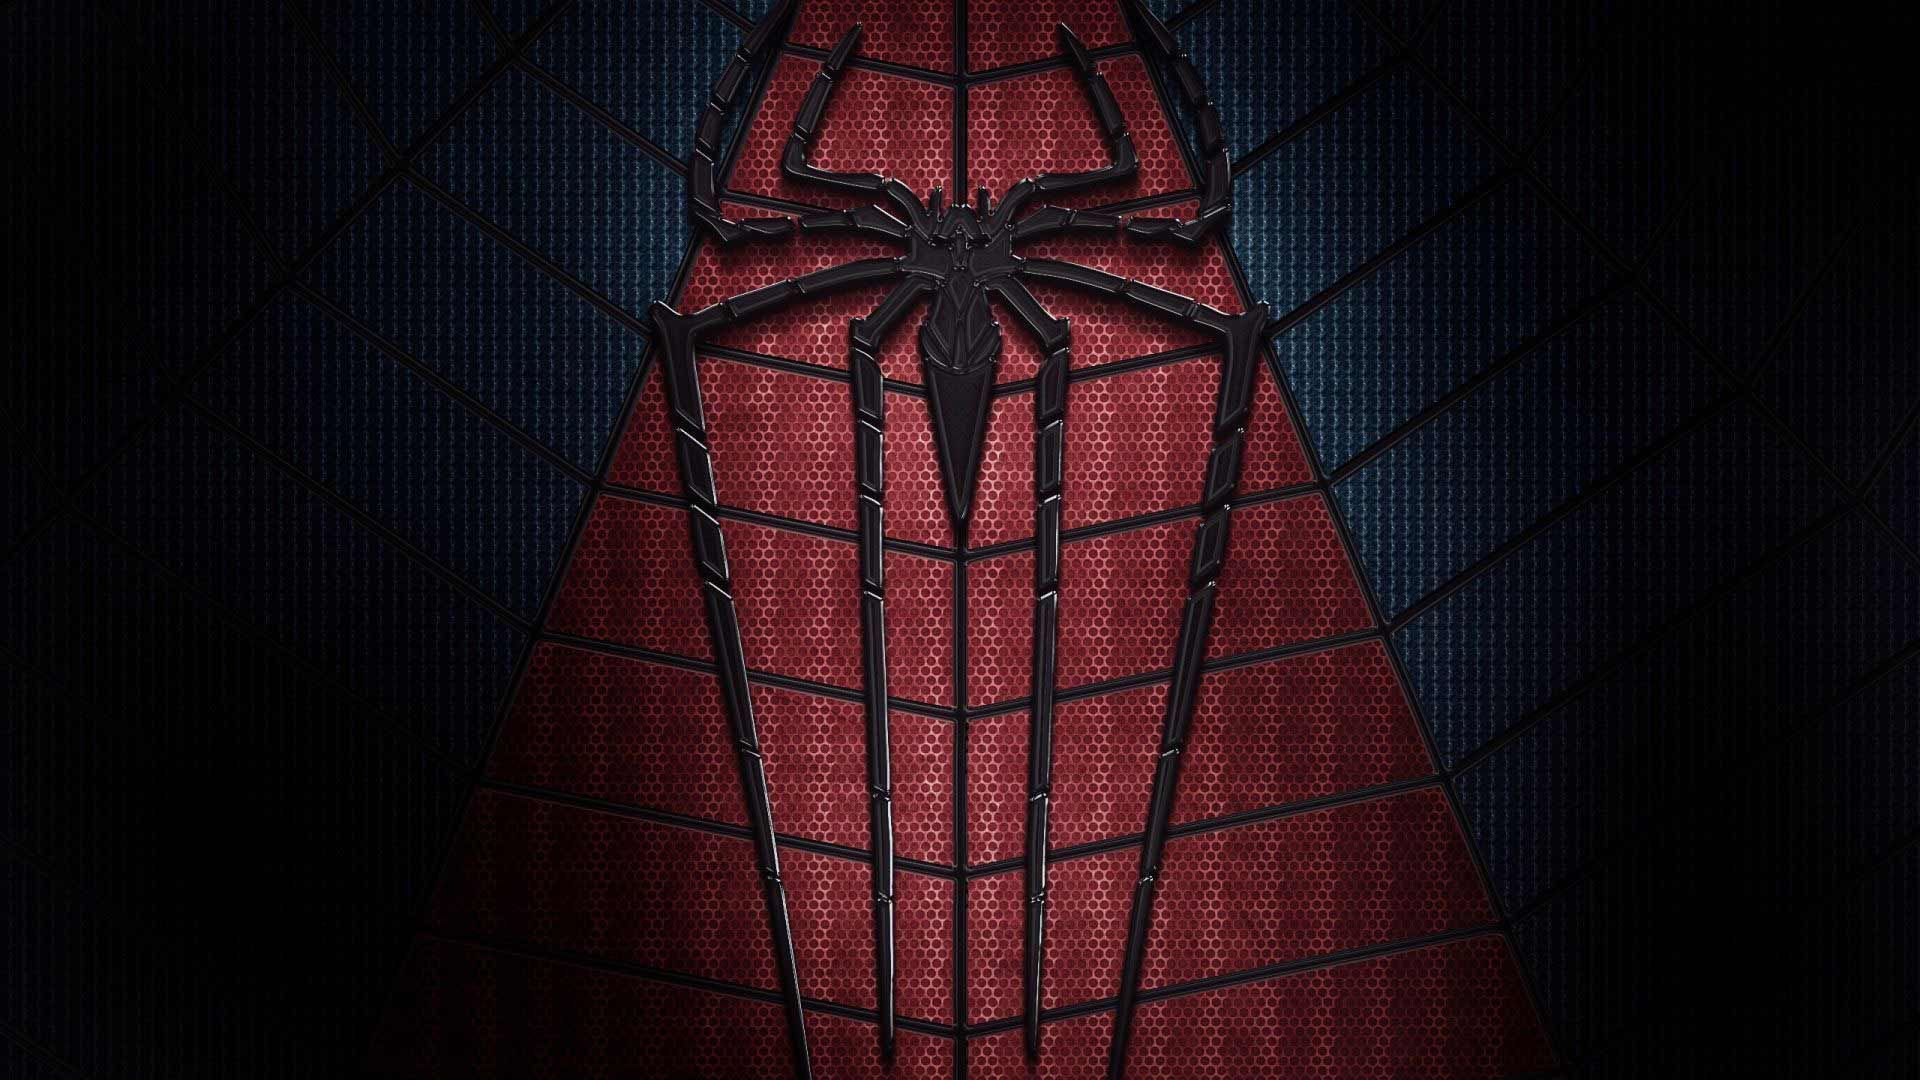 Spider Man Logo Movie Wallpaper The amazing spiderman 2